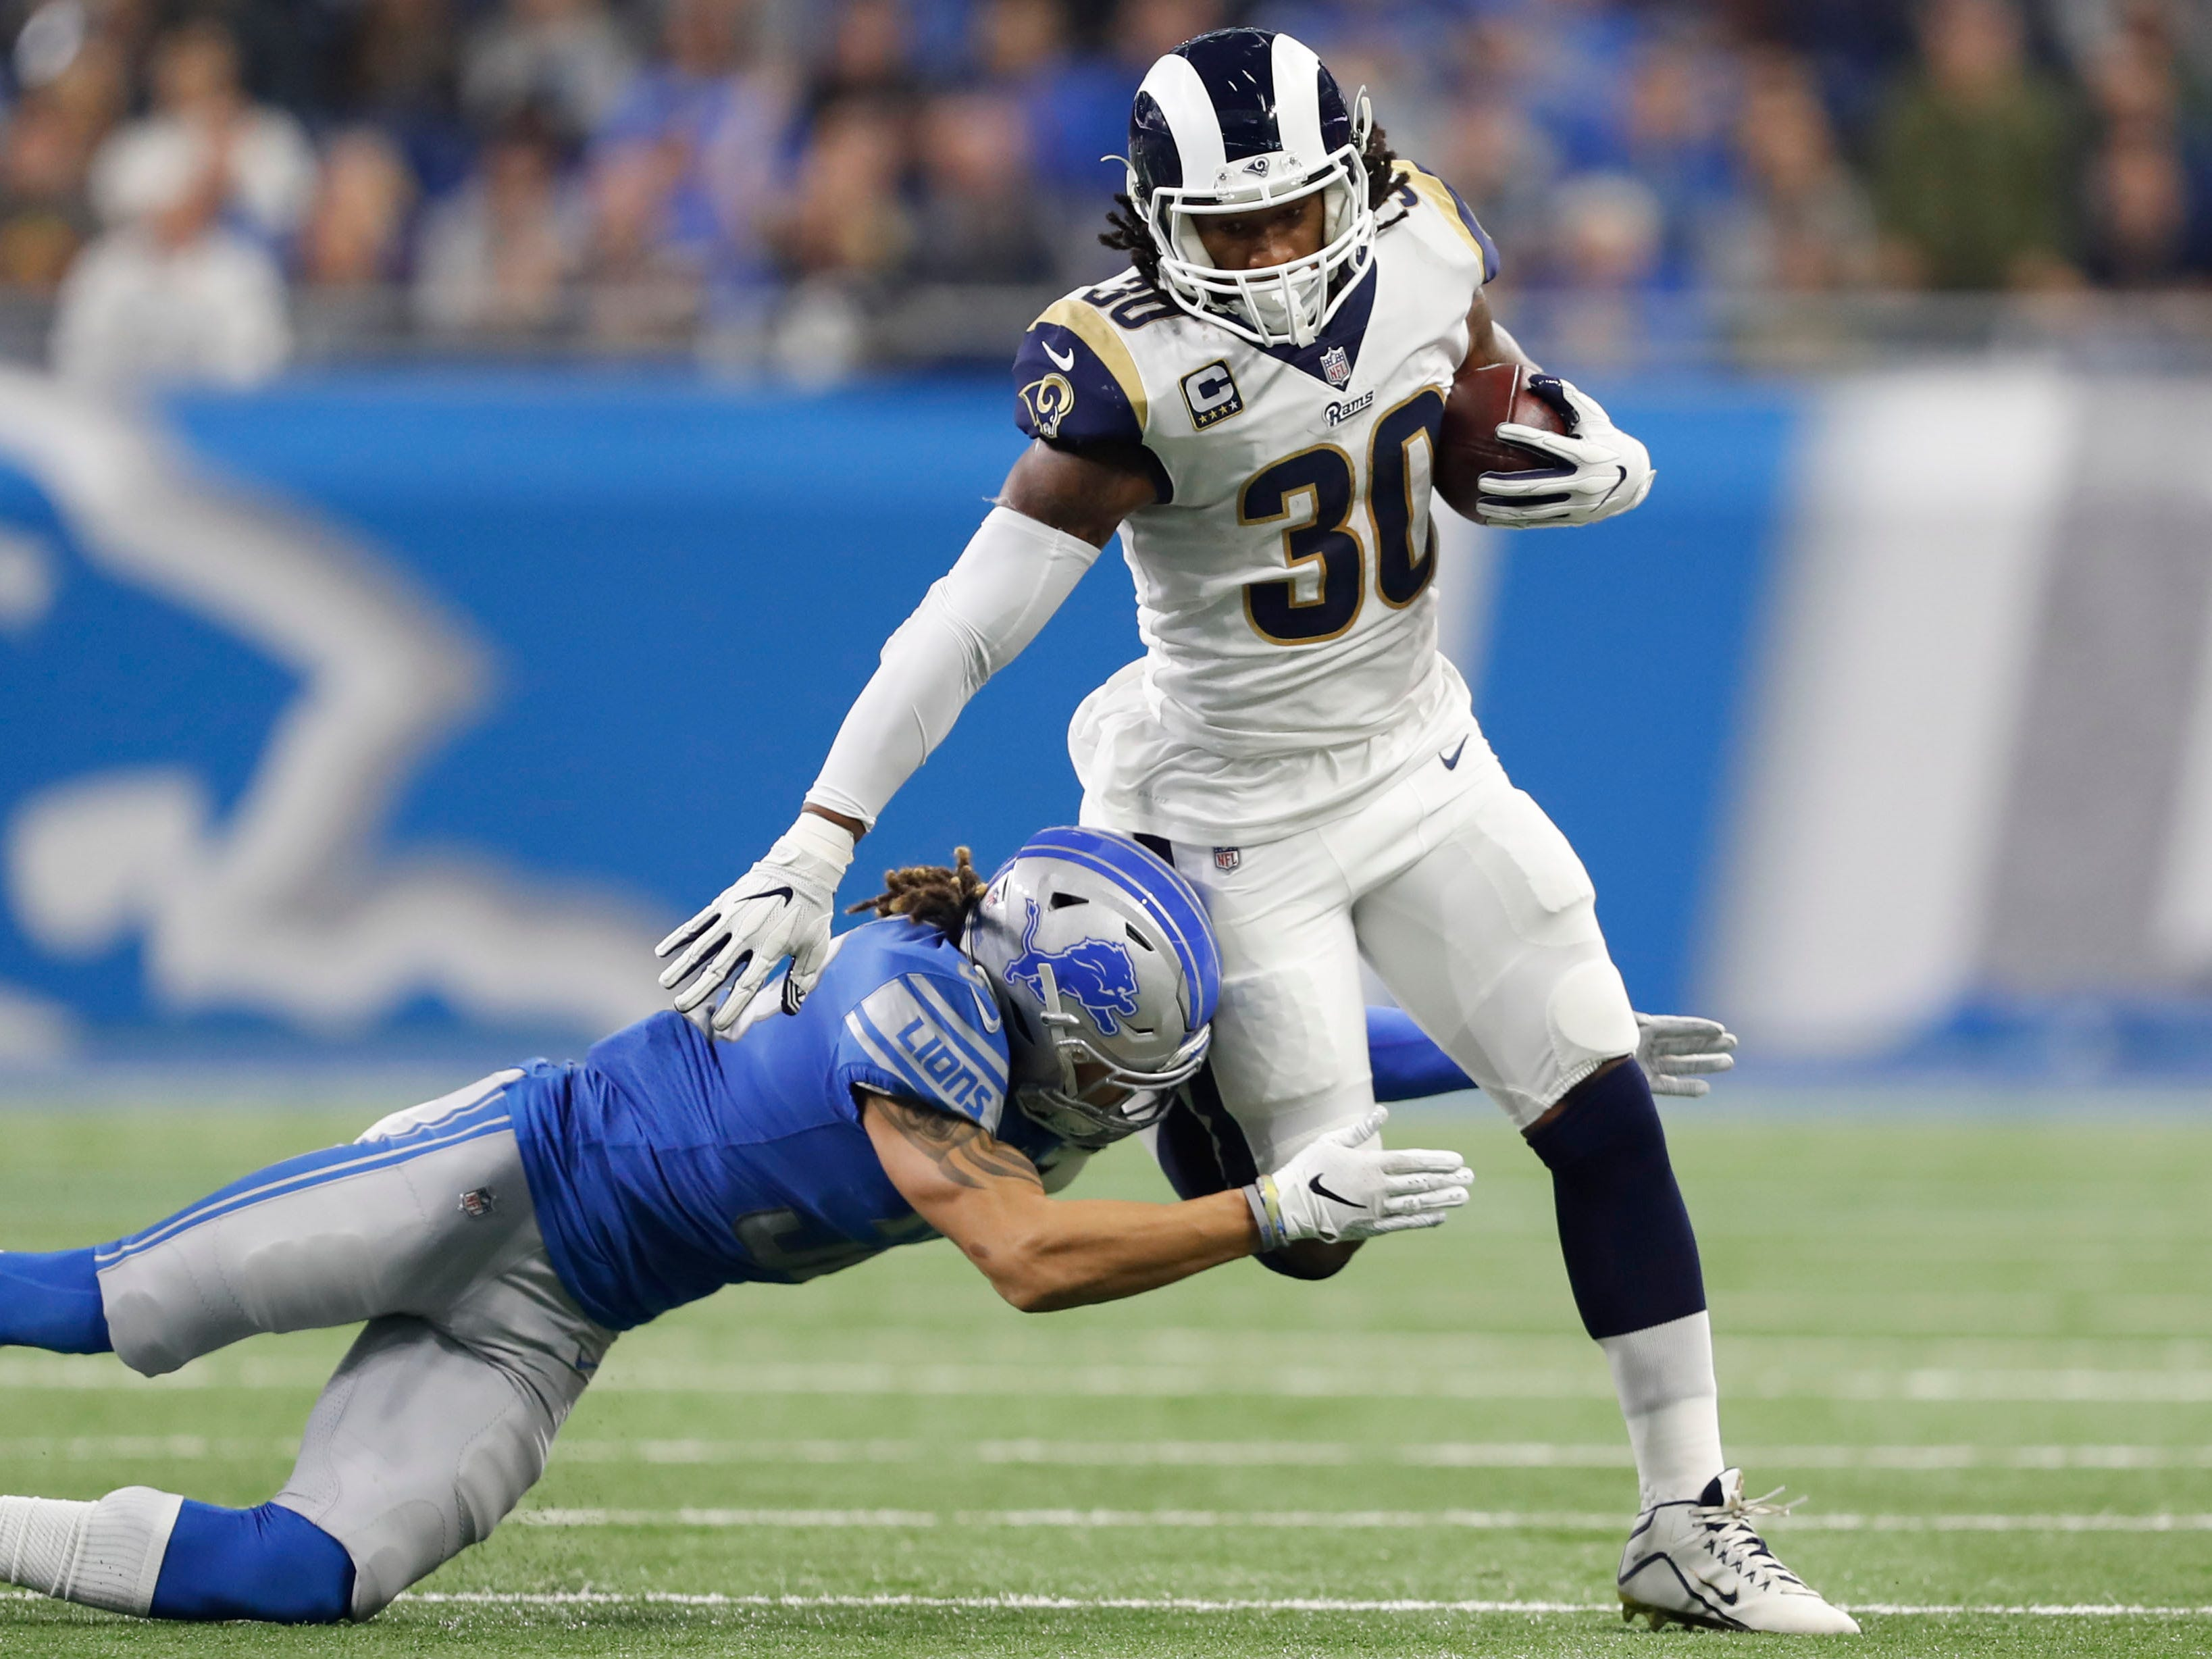 Los Angeles Rams running back Todd Gurley (30) runs the ball against Detroit Lions defensive back Mike Ford (38) during the first quarter at Ford Field.